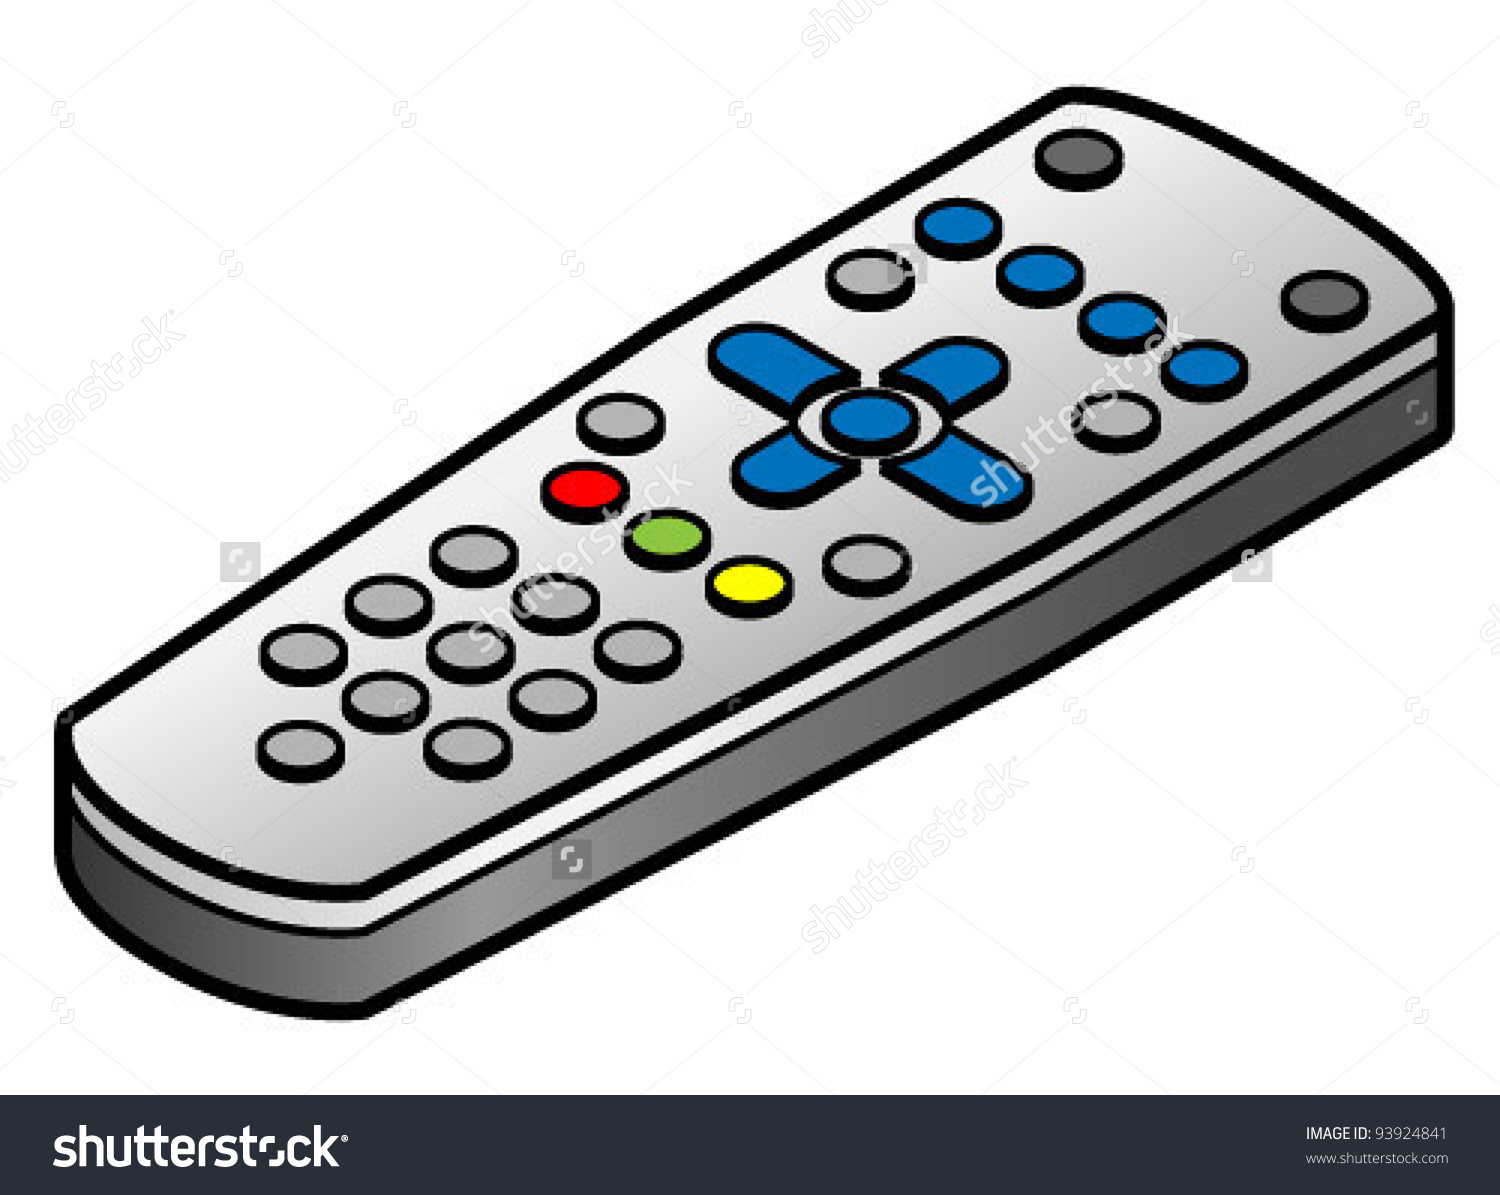 Tvdvdset Top Box Remote Control Stock Vector 93924841.